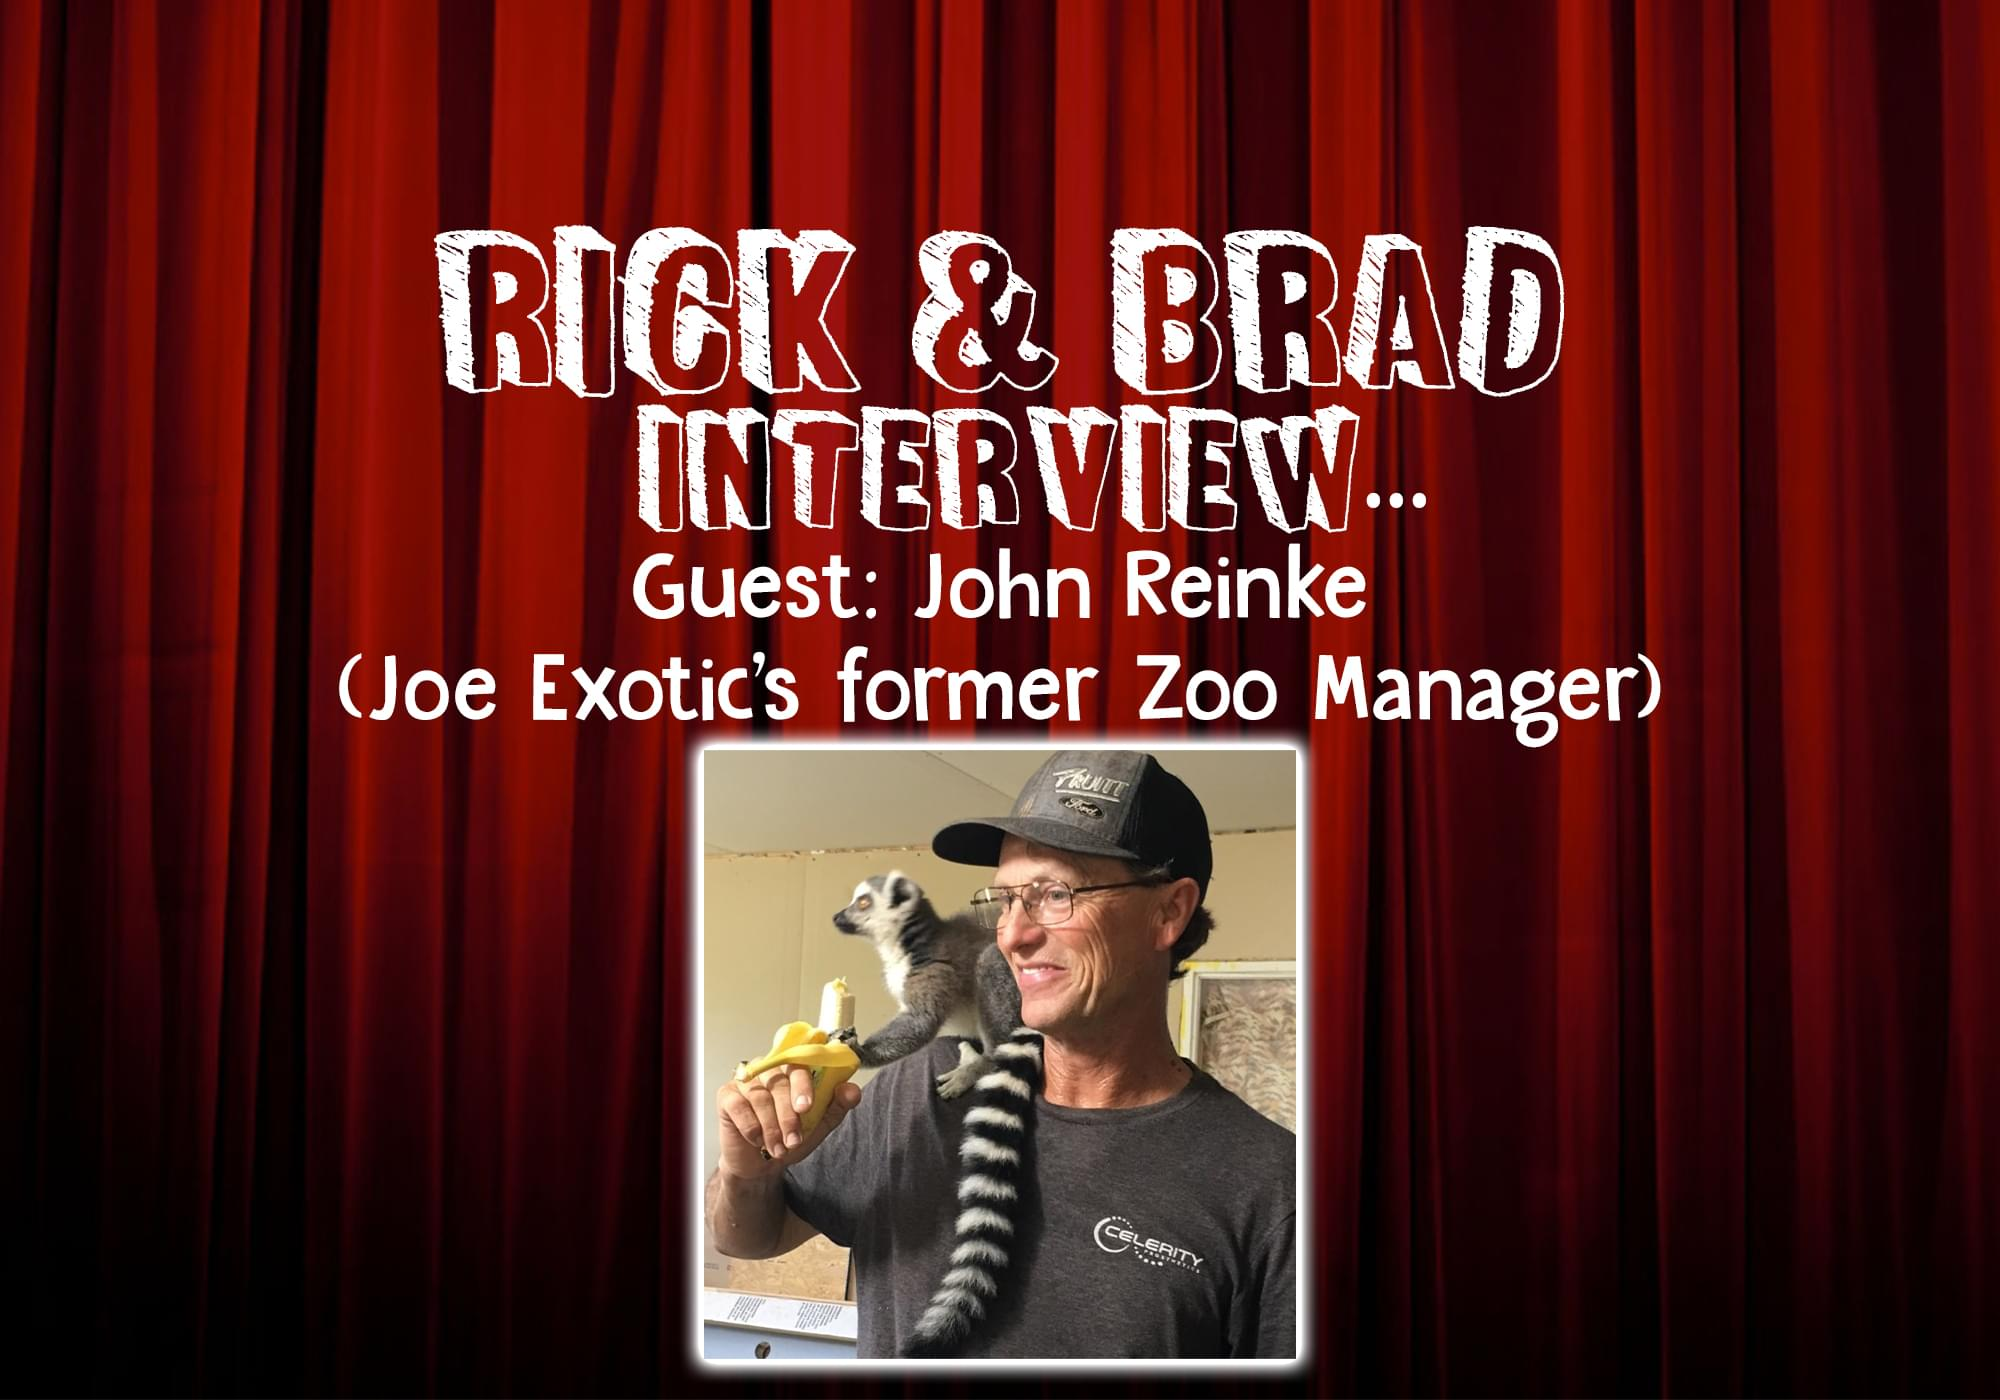 John Reinke Interview (Former Joe Exotic Zoo Manager)